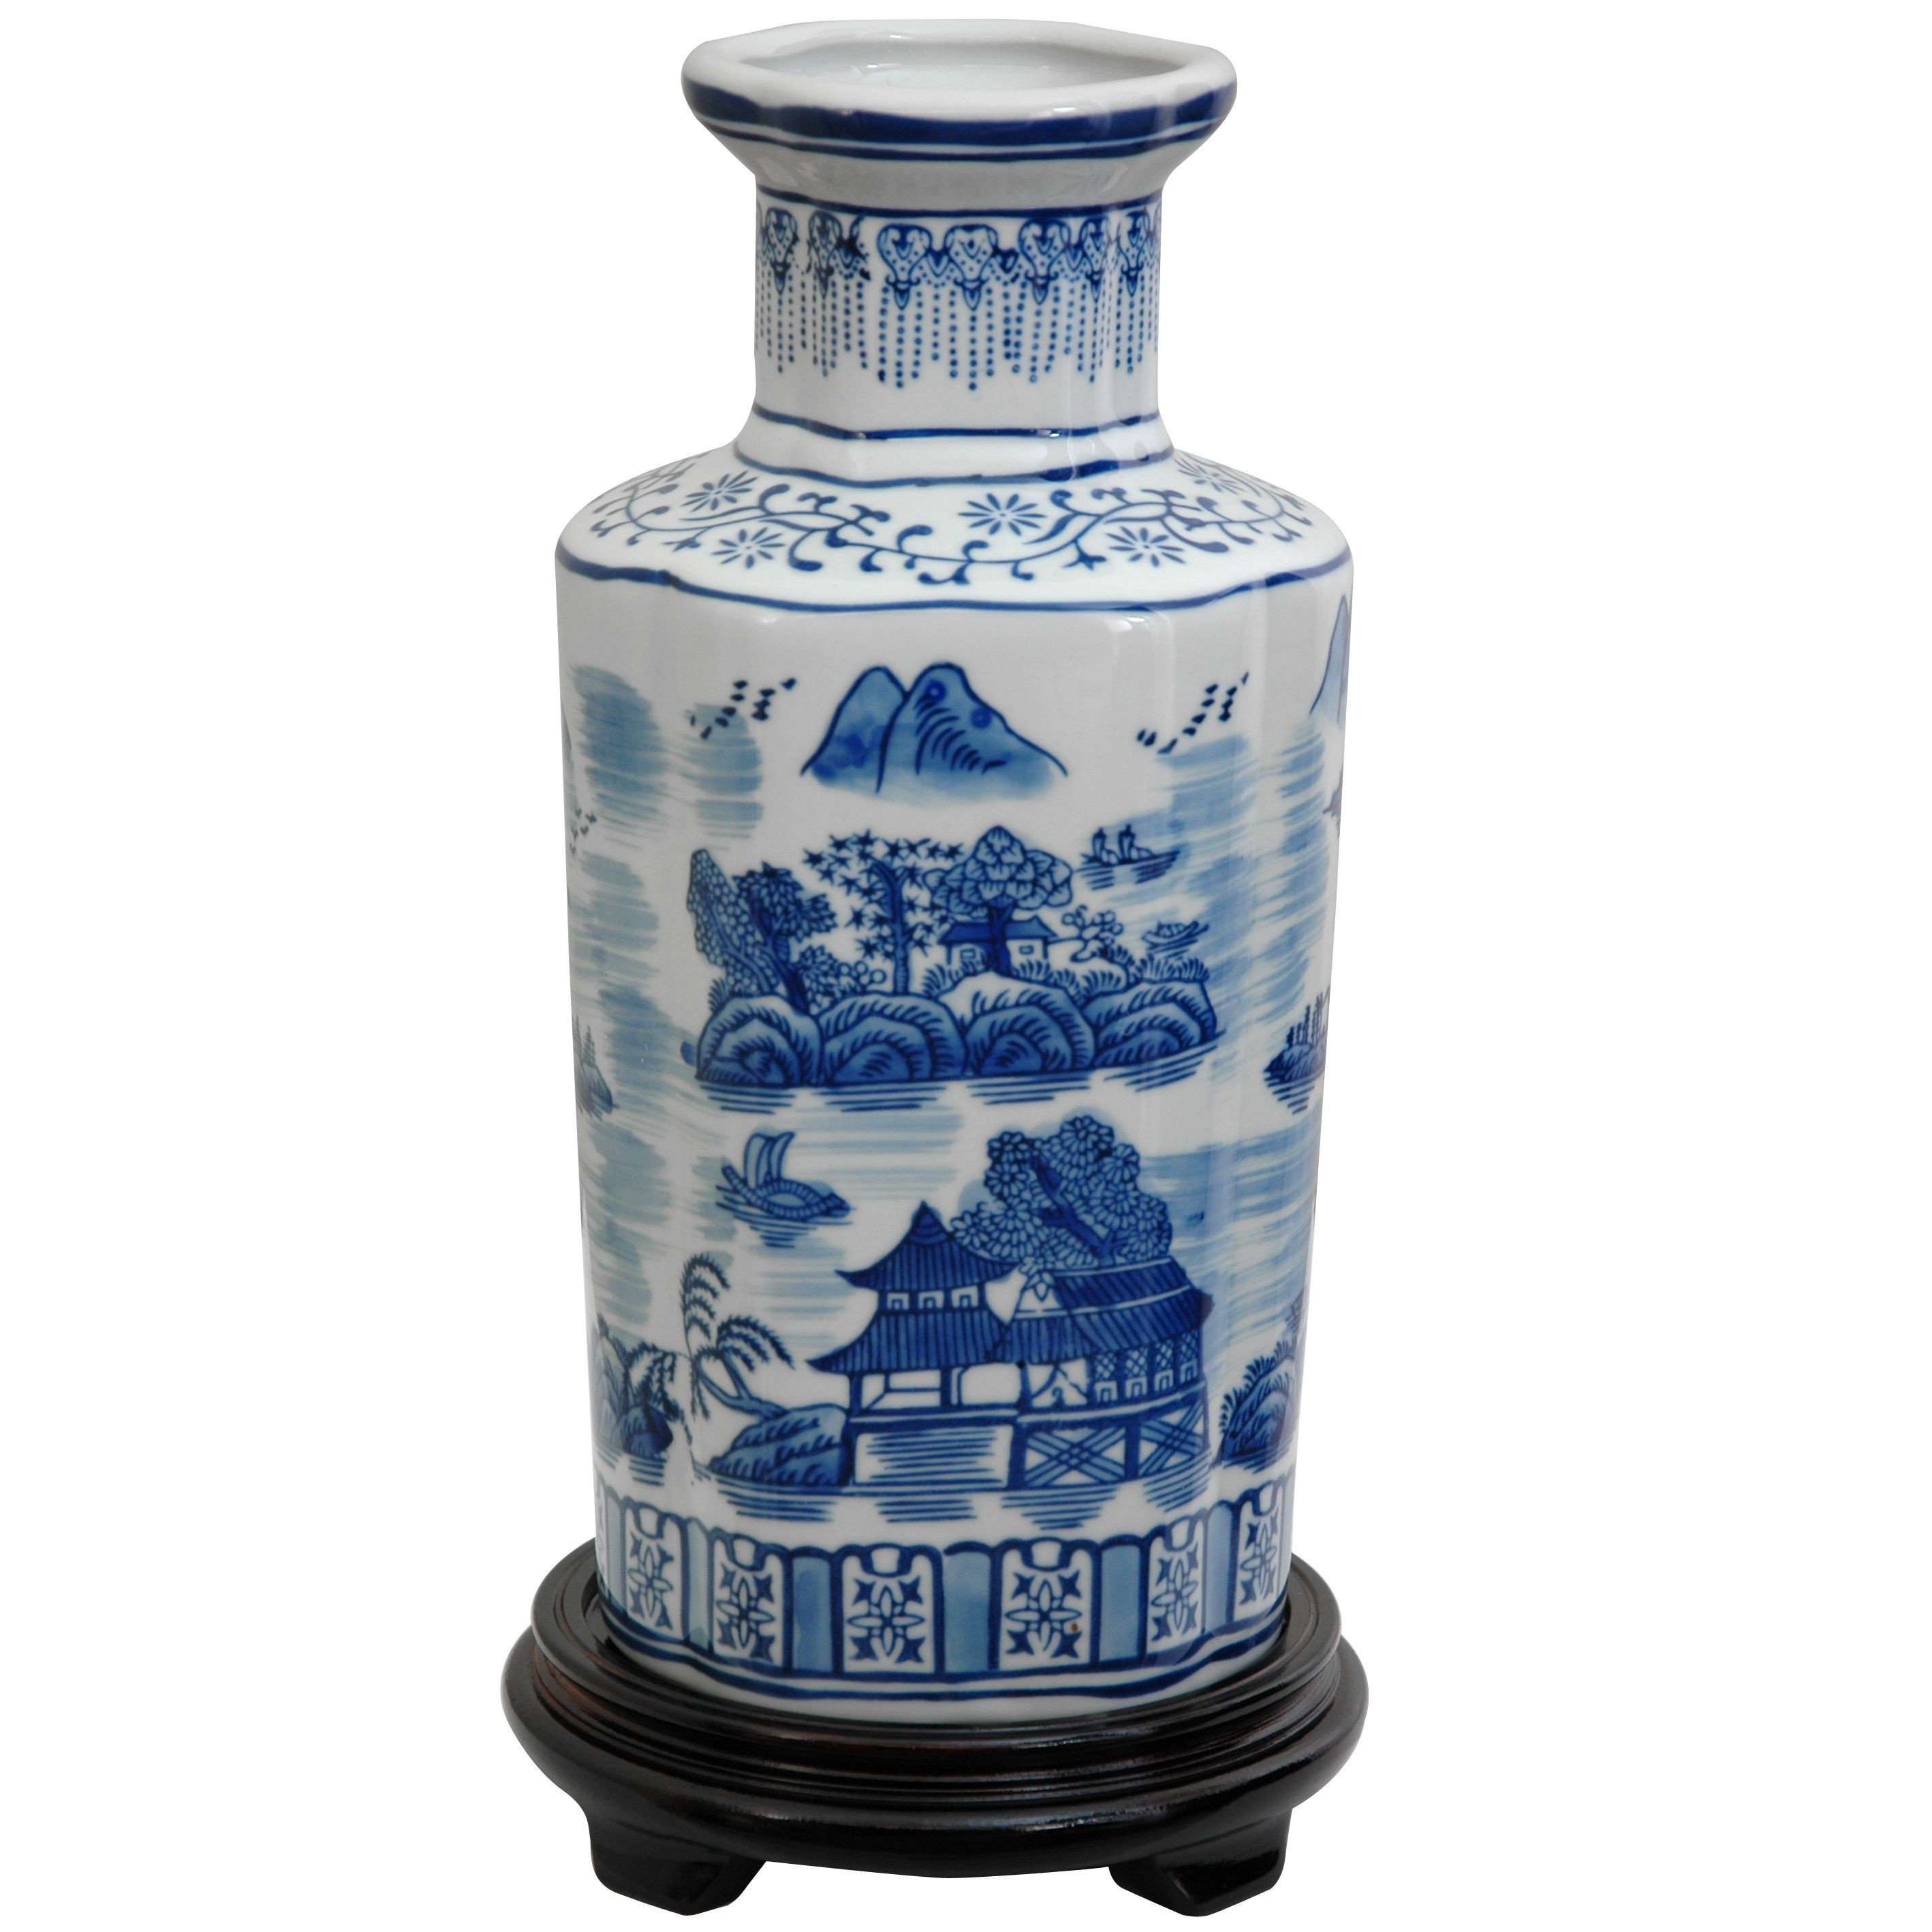 Polish Pottery Vase Of Tall Blue Vase Images Give Your Home A touch Of sophistication with Intended for Tall Blue Vase Images Give Your Home A touch Of sophistication with This Striking Of Tall